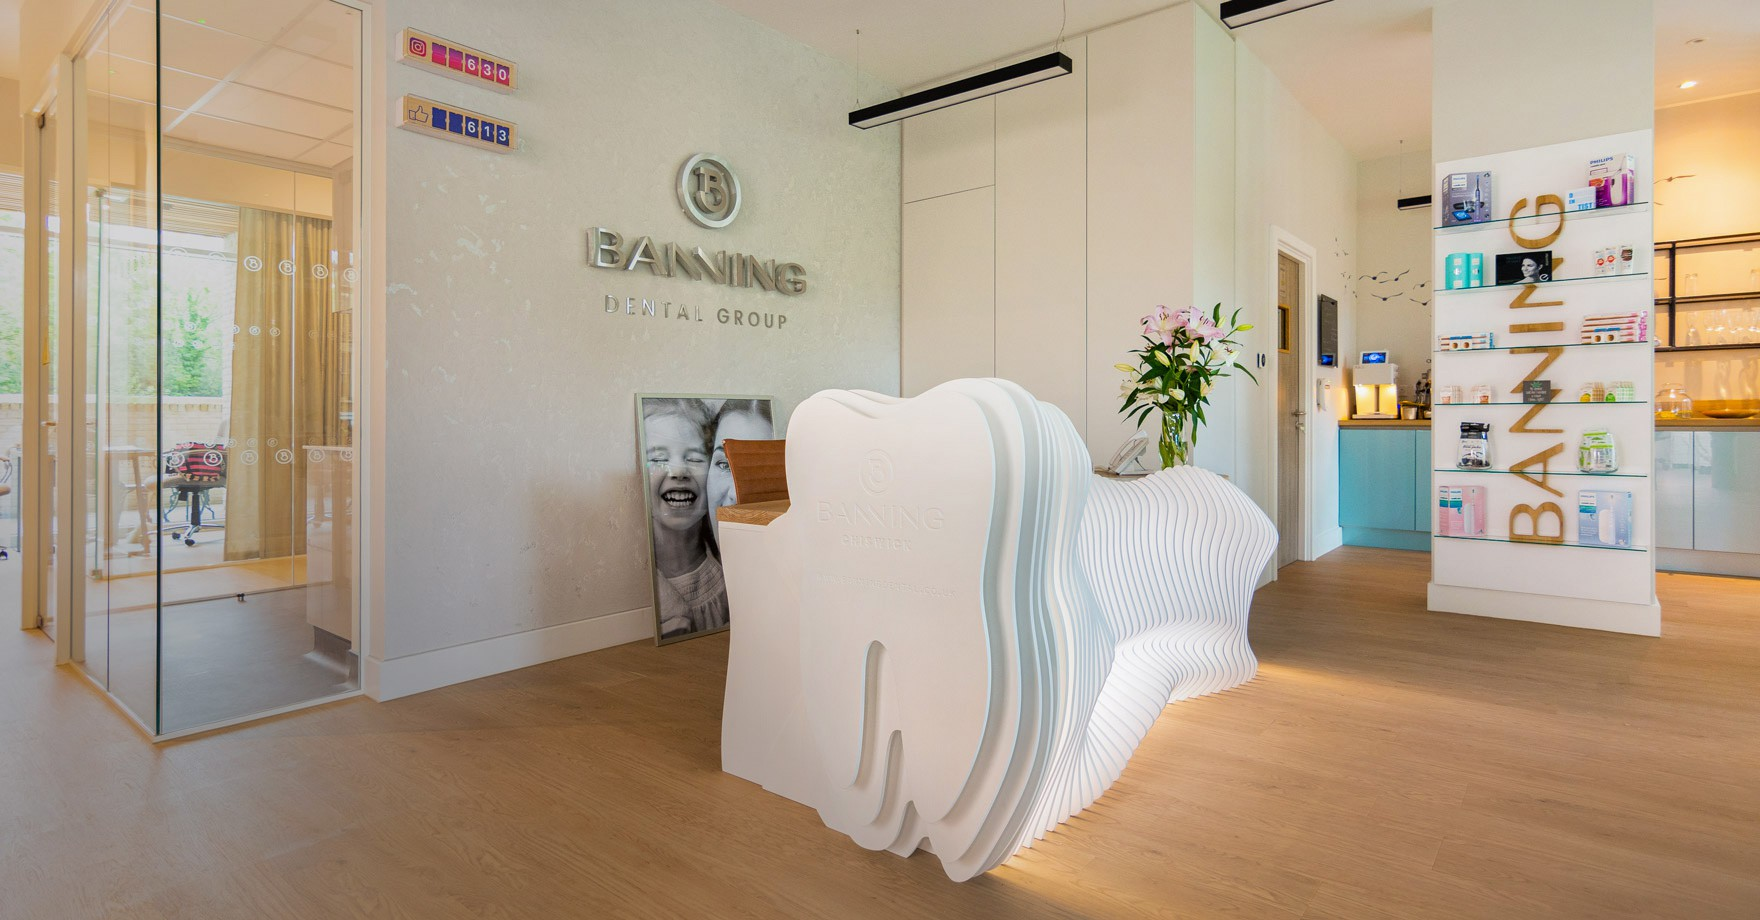 Banning Dental Group reception area design with bespoke desk in the shape of a tooth with Banning Dental logo in silver planted on the wall.